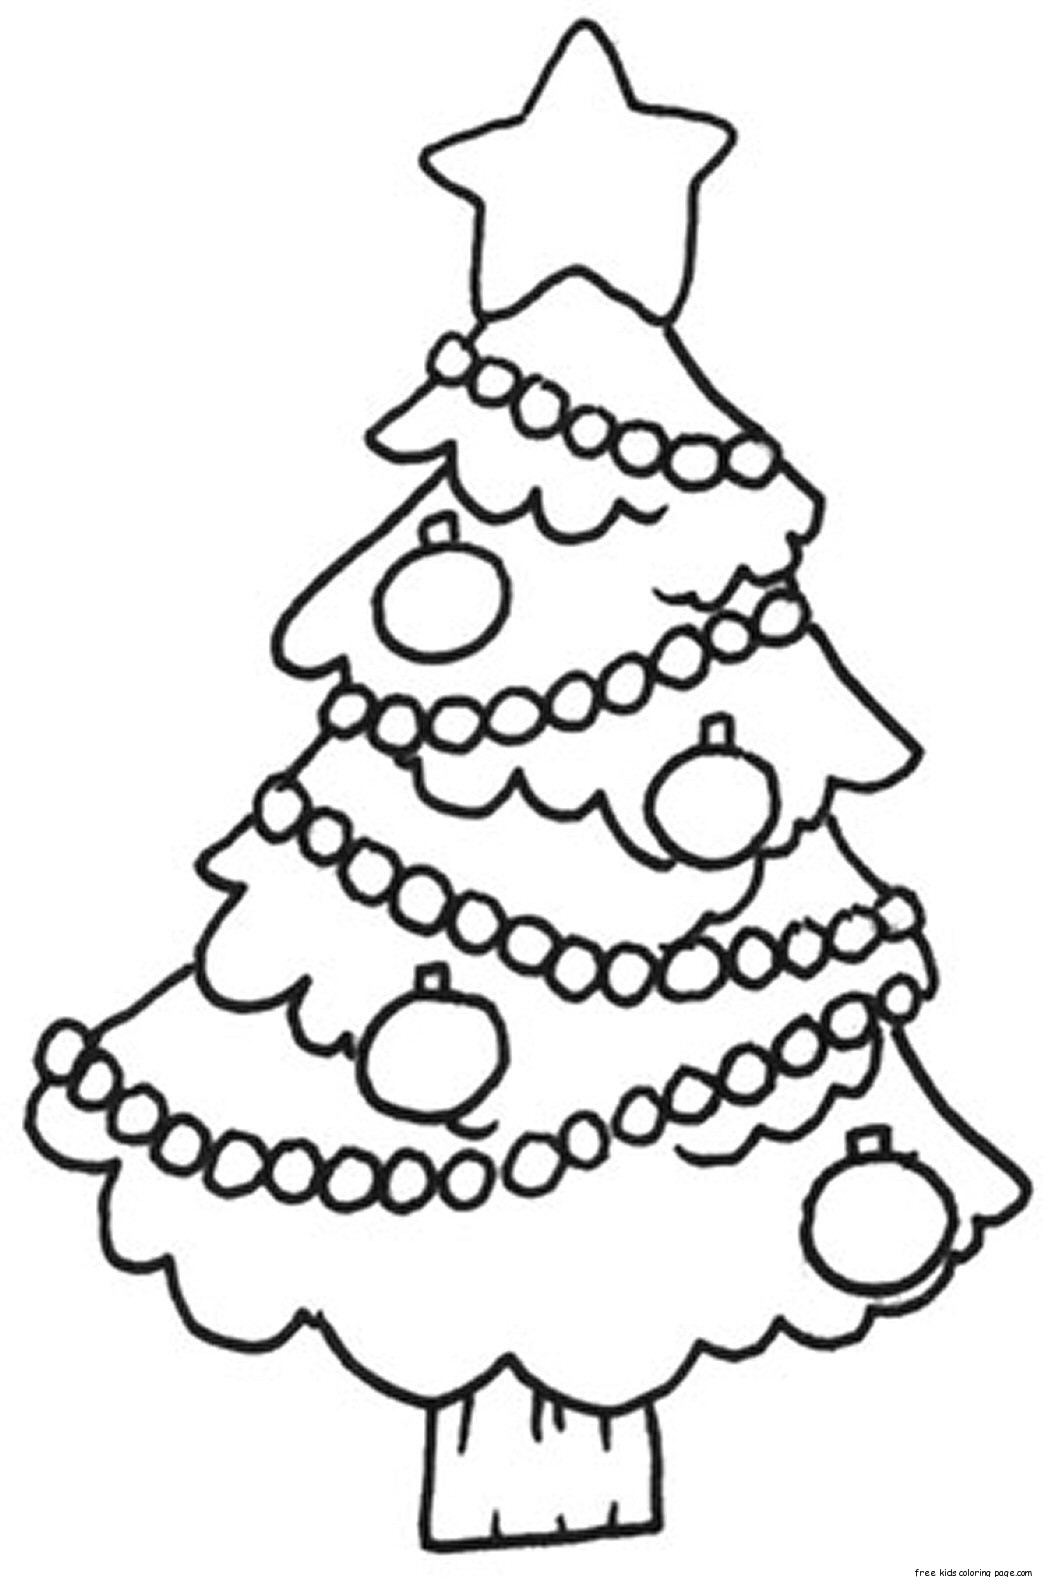 Printable Decorated Christmas Tree Pictures Coloring In PagesFree Printable Coloring Pages For Kids